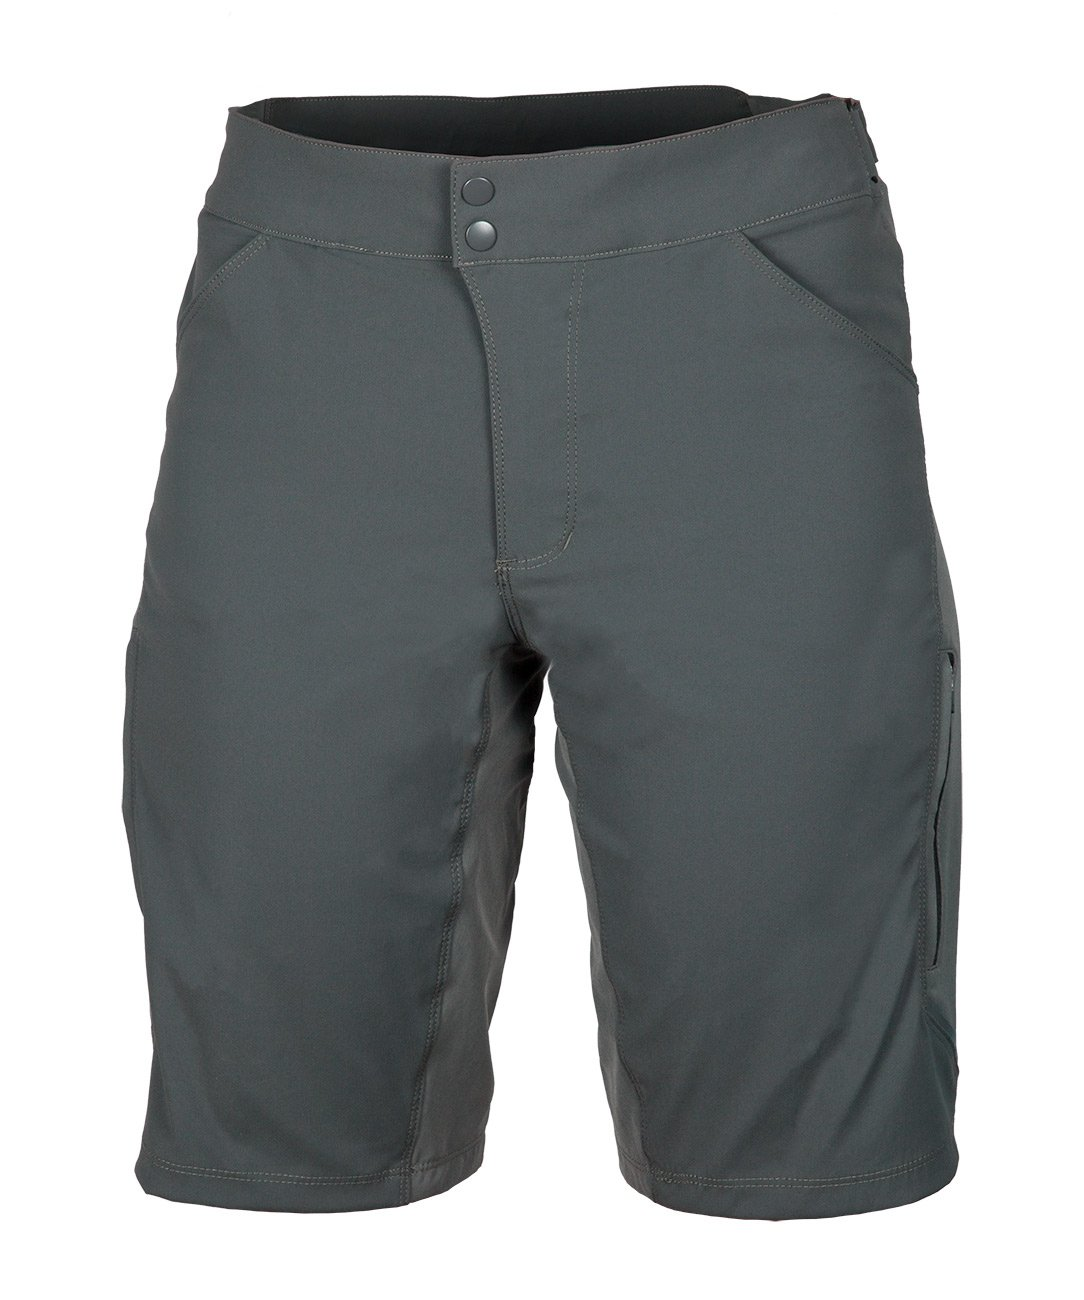 "Women's IMBA 11"" Shorts"